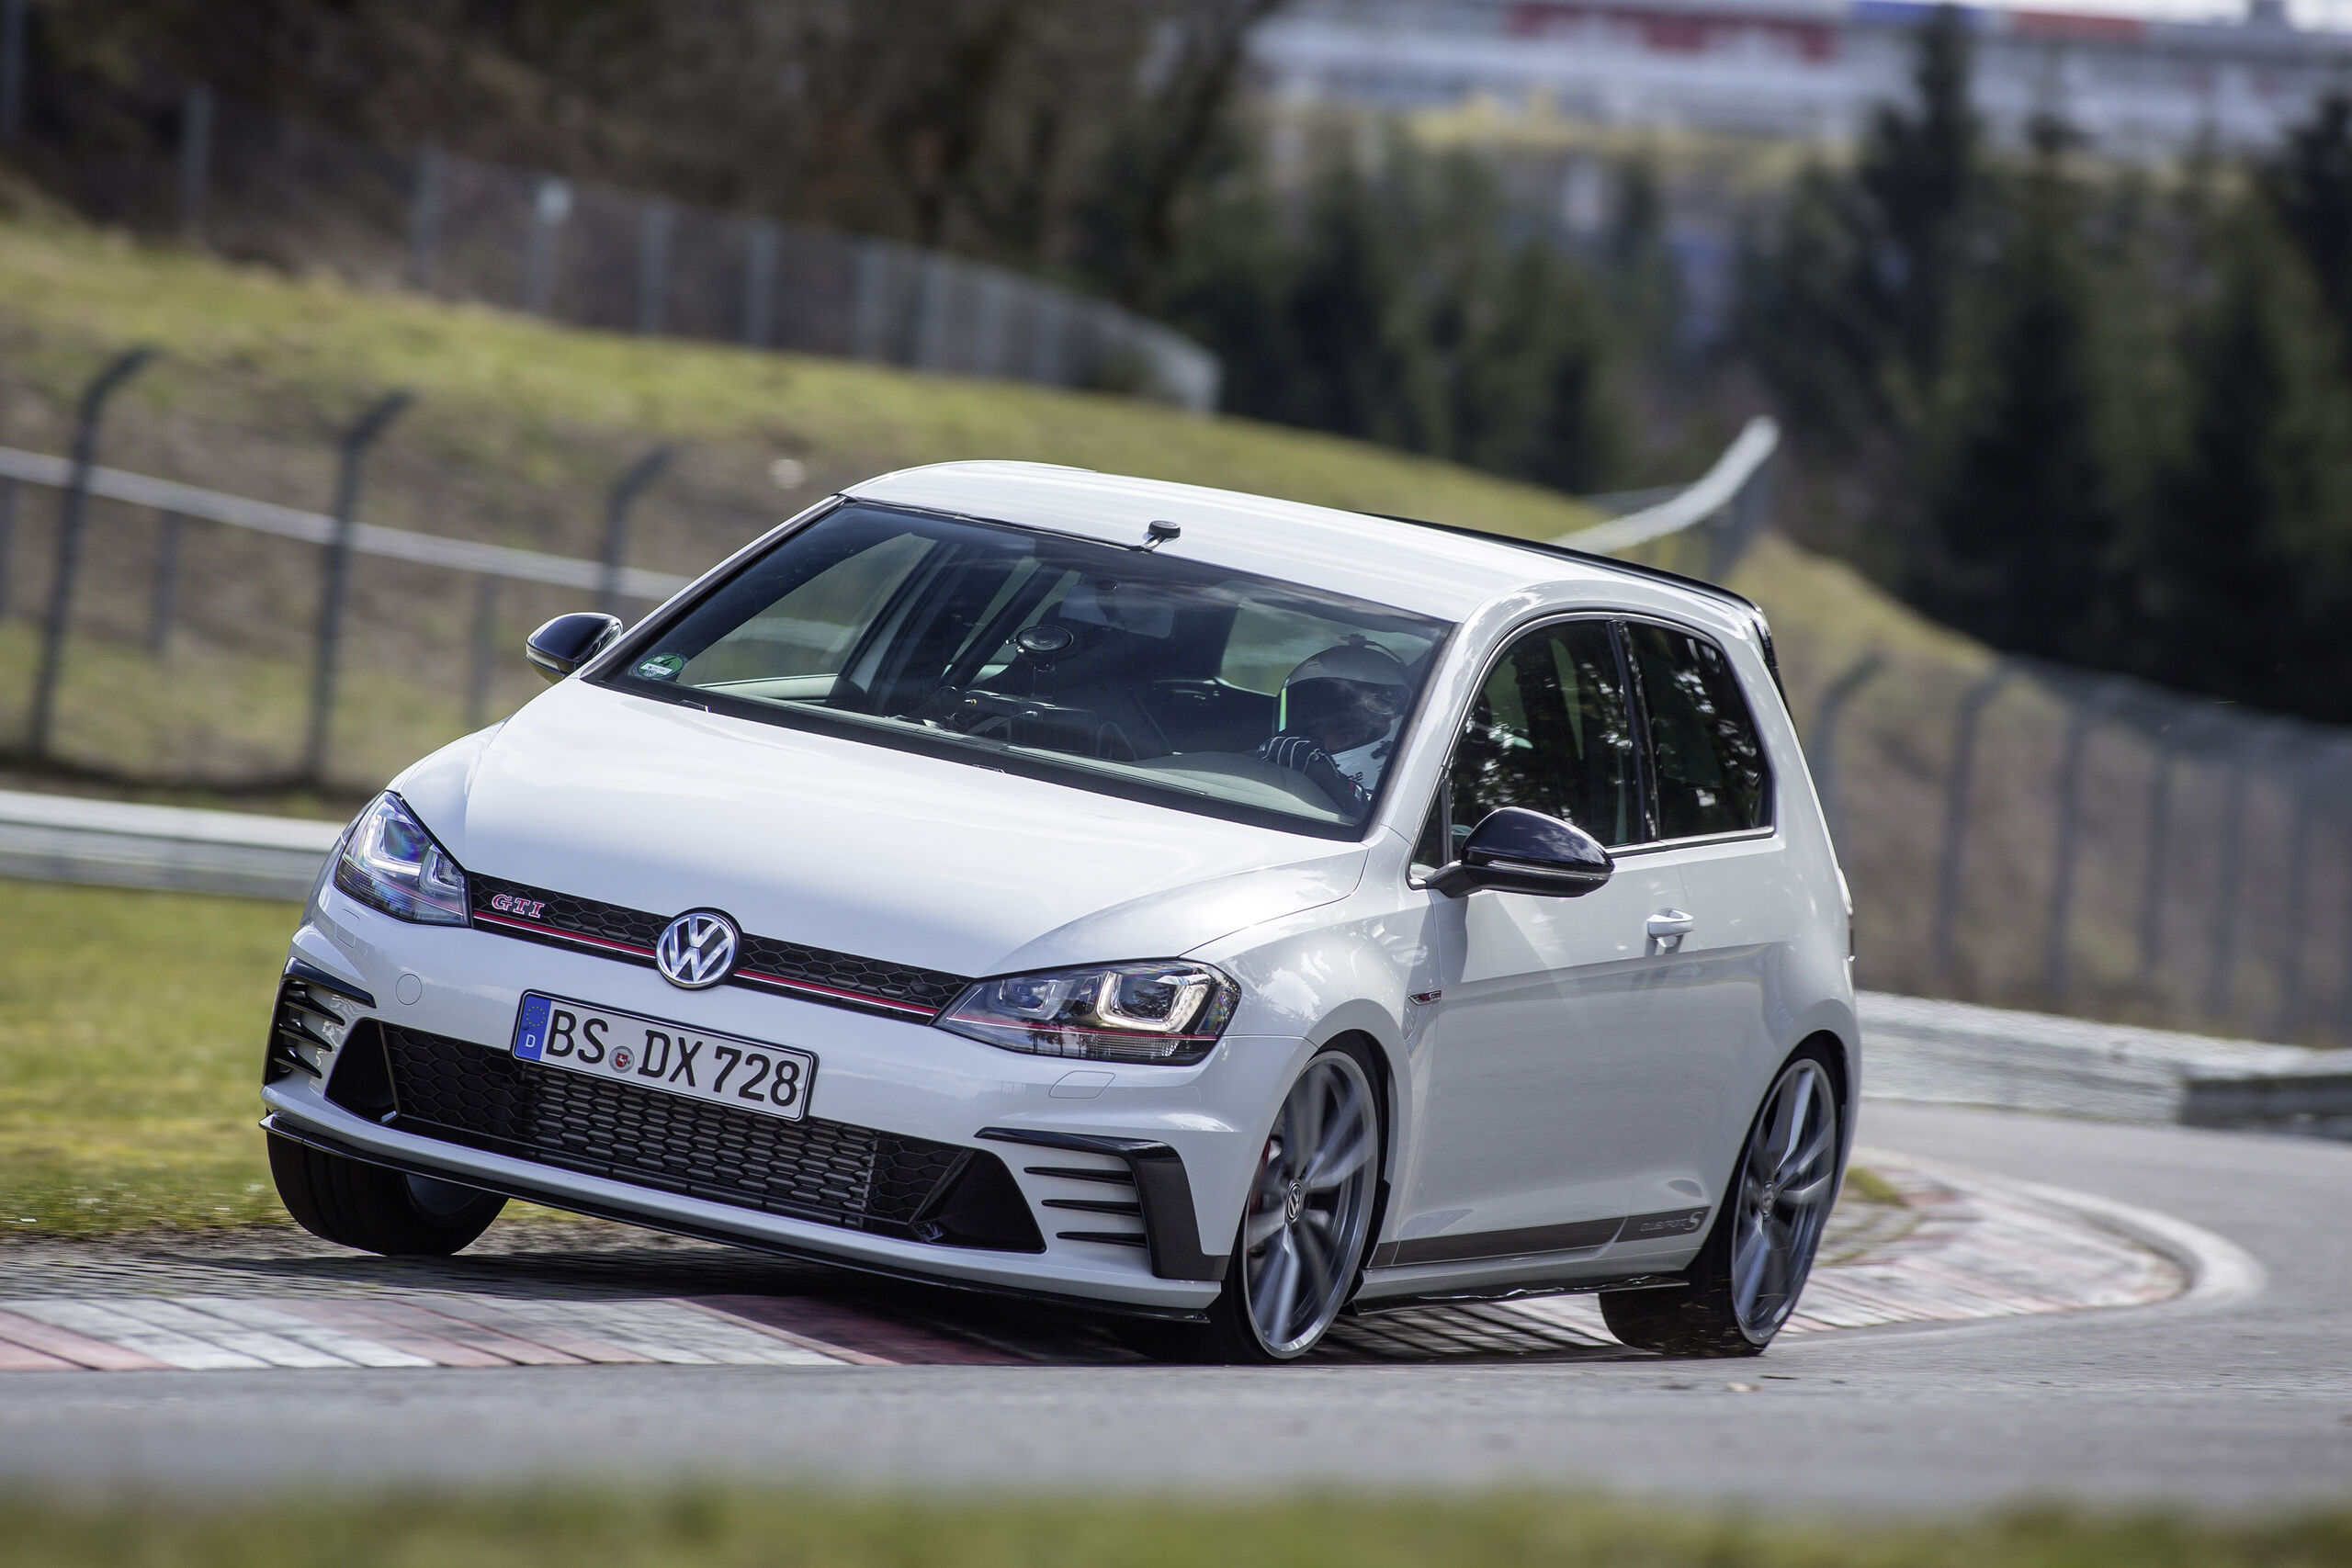 VW Golf GTI Clubsport S bele barve